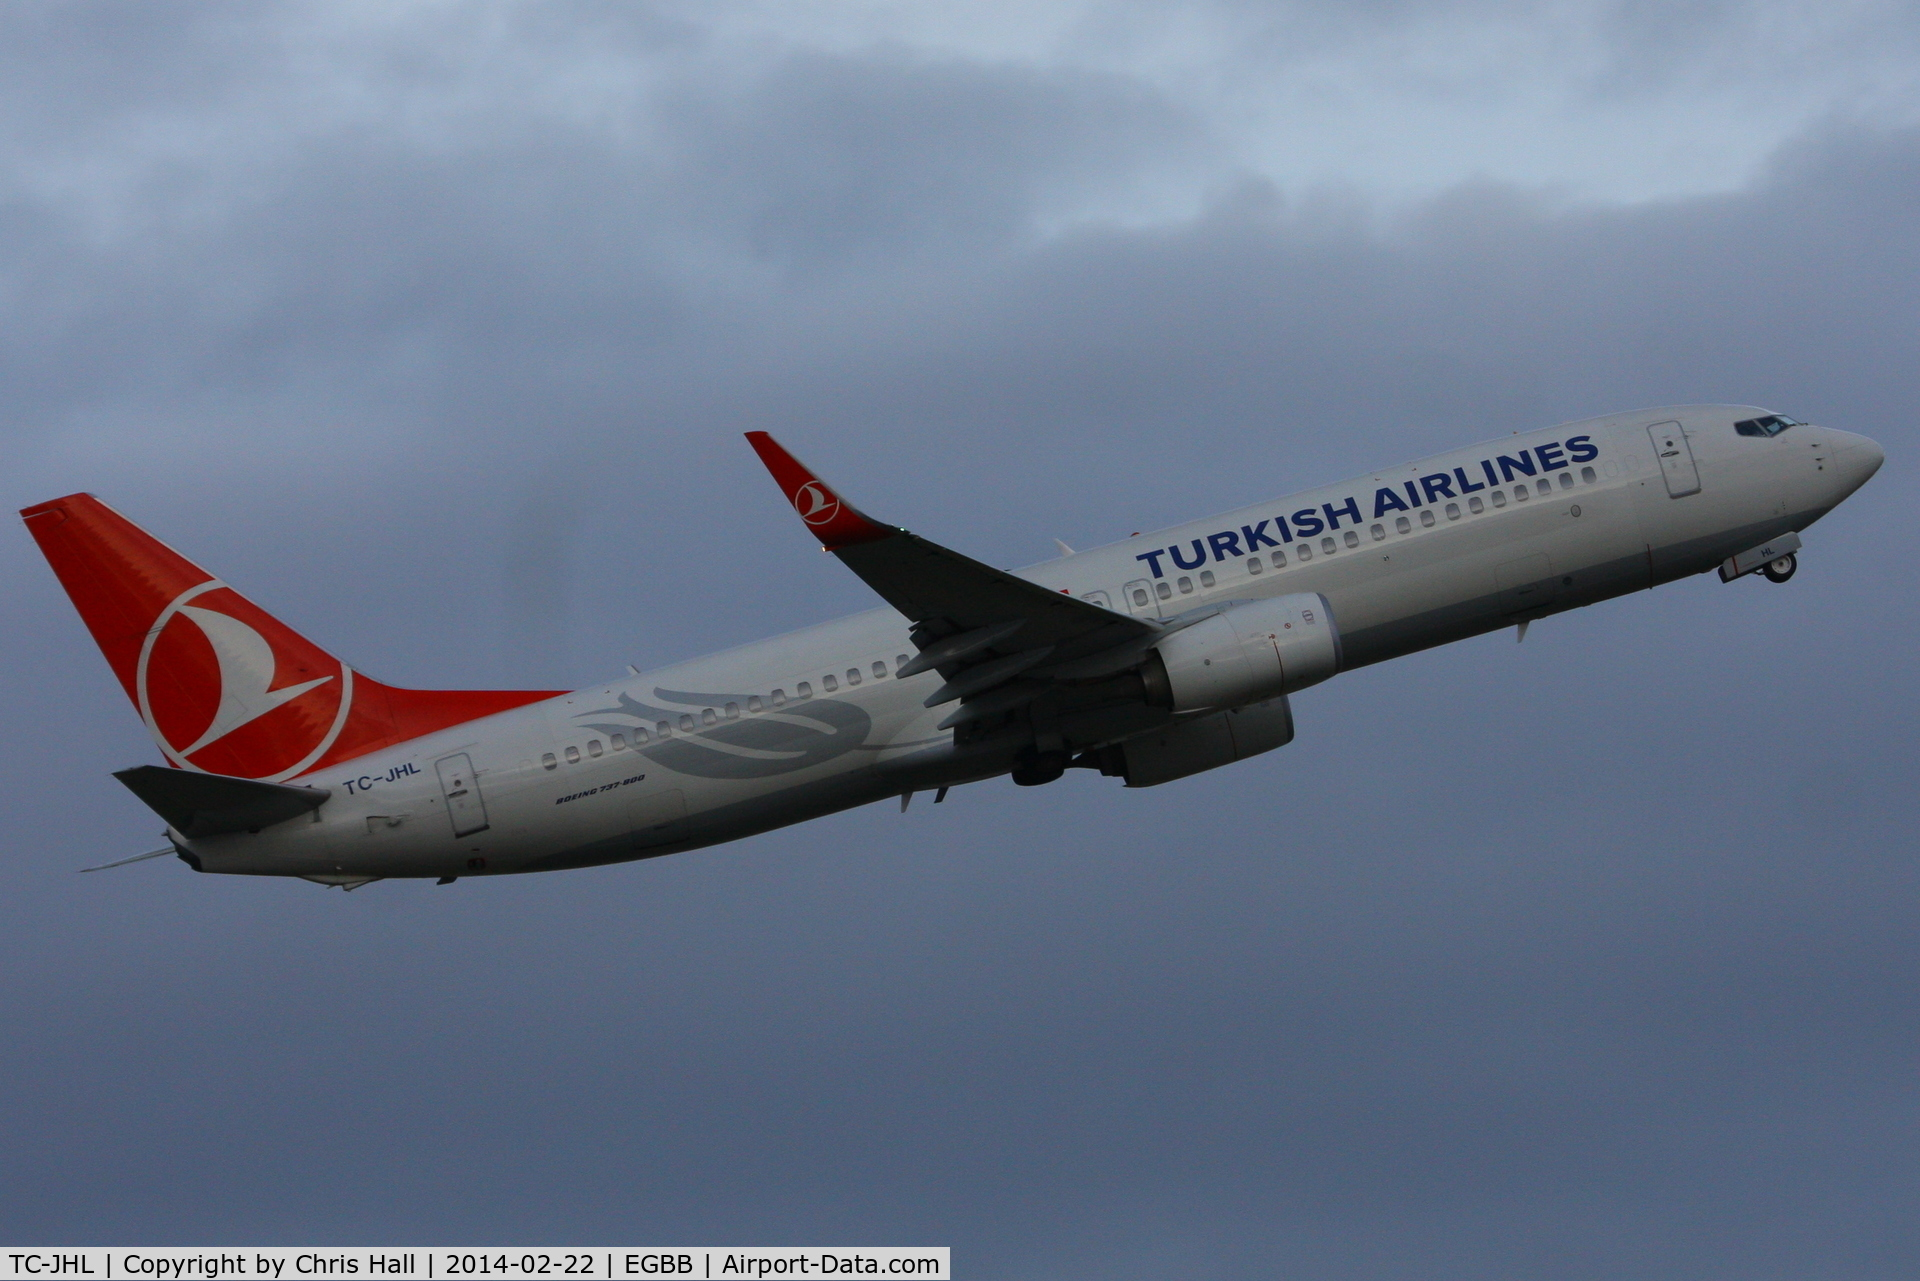 TC-JHL, 2011 Boeing 737-8F2 C/N 40976, Turkish Airlines